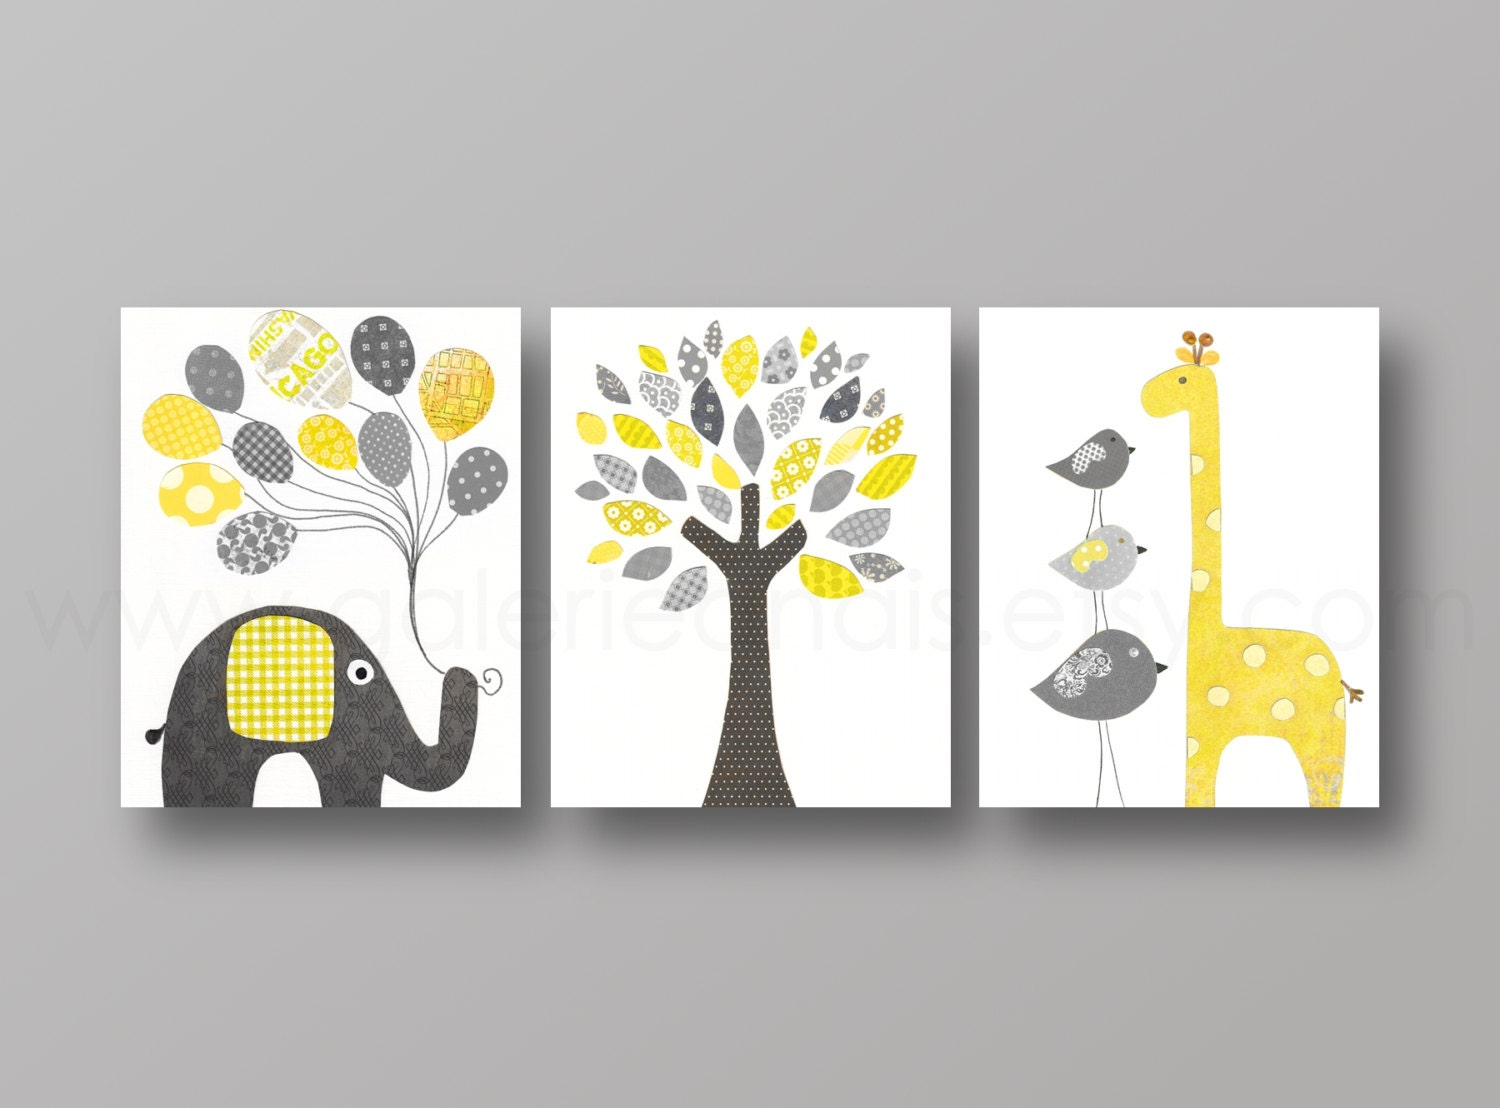 Wall Art For Nursery Ideas : Nursery art print wall decor baby by